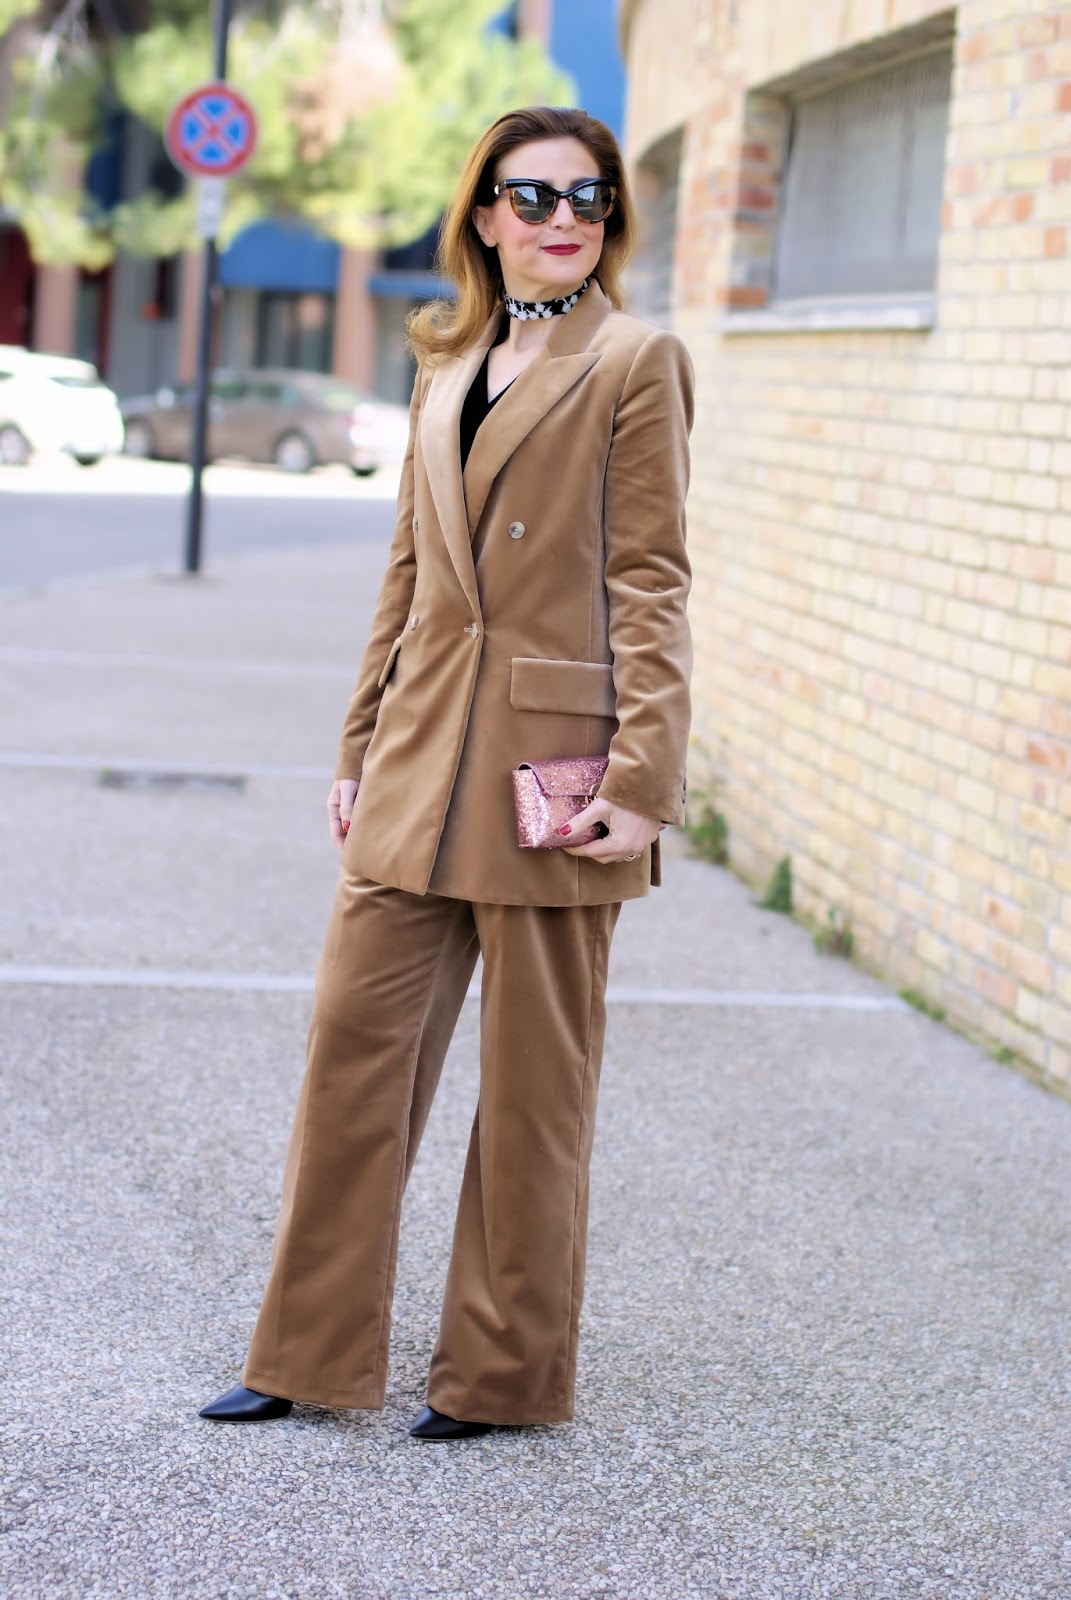 Max Mara BRERA velvet suit and RYinNYC lace choker on Fashion and Cookies fashion blog, fashion blogger style